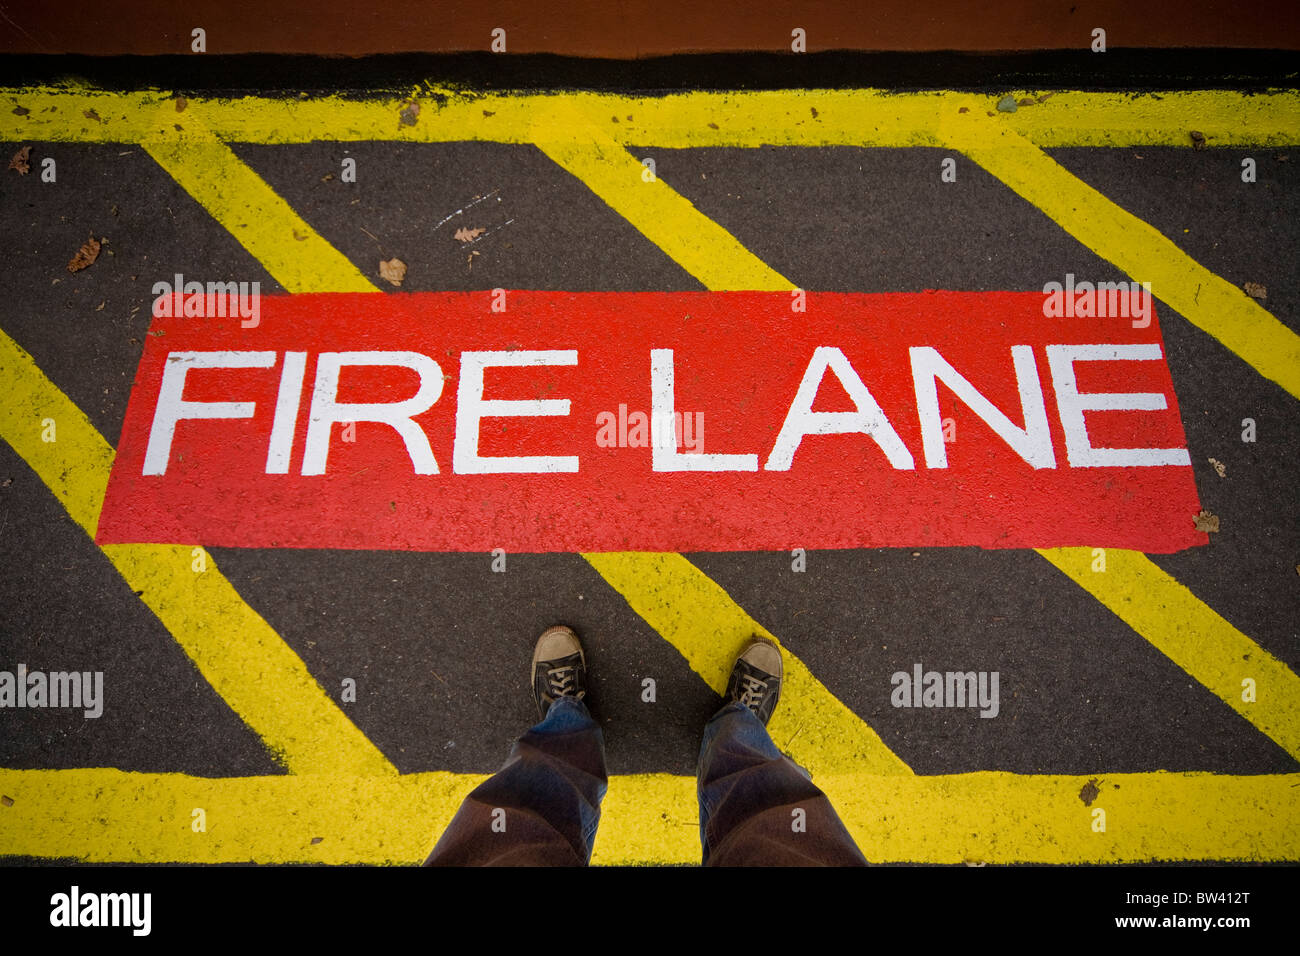 Man standing in a section of a driveway labeled 'Fire Lane' - Stock Image